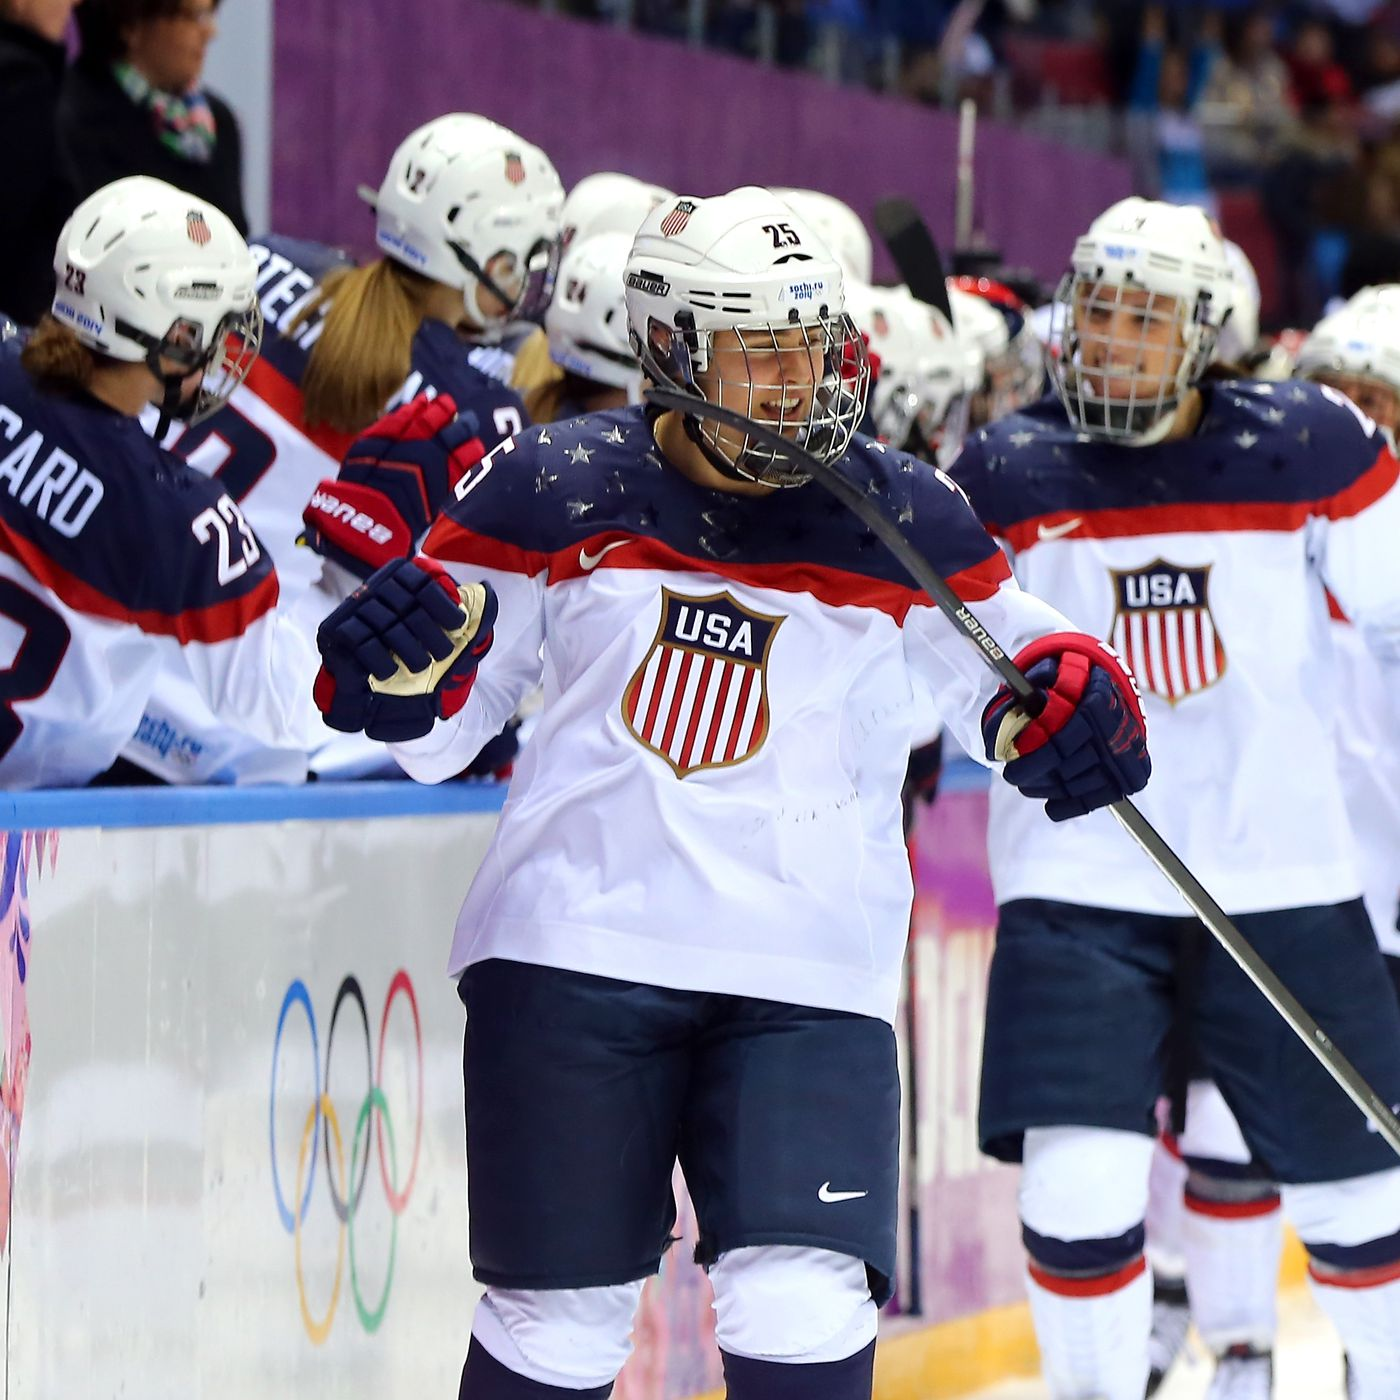 How to watch women s ice hockey at the Winter Olympics  A guide to  understanding and appreciating the sport d98638e25